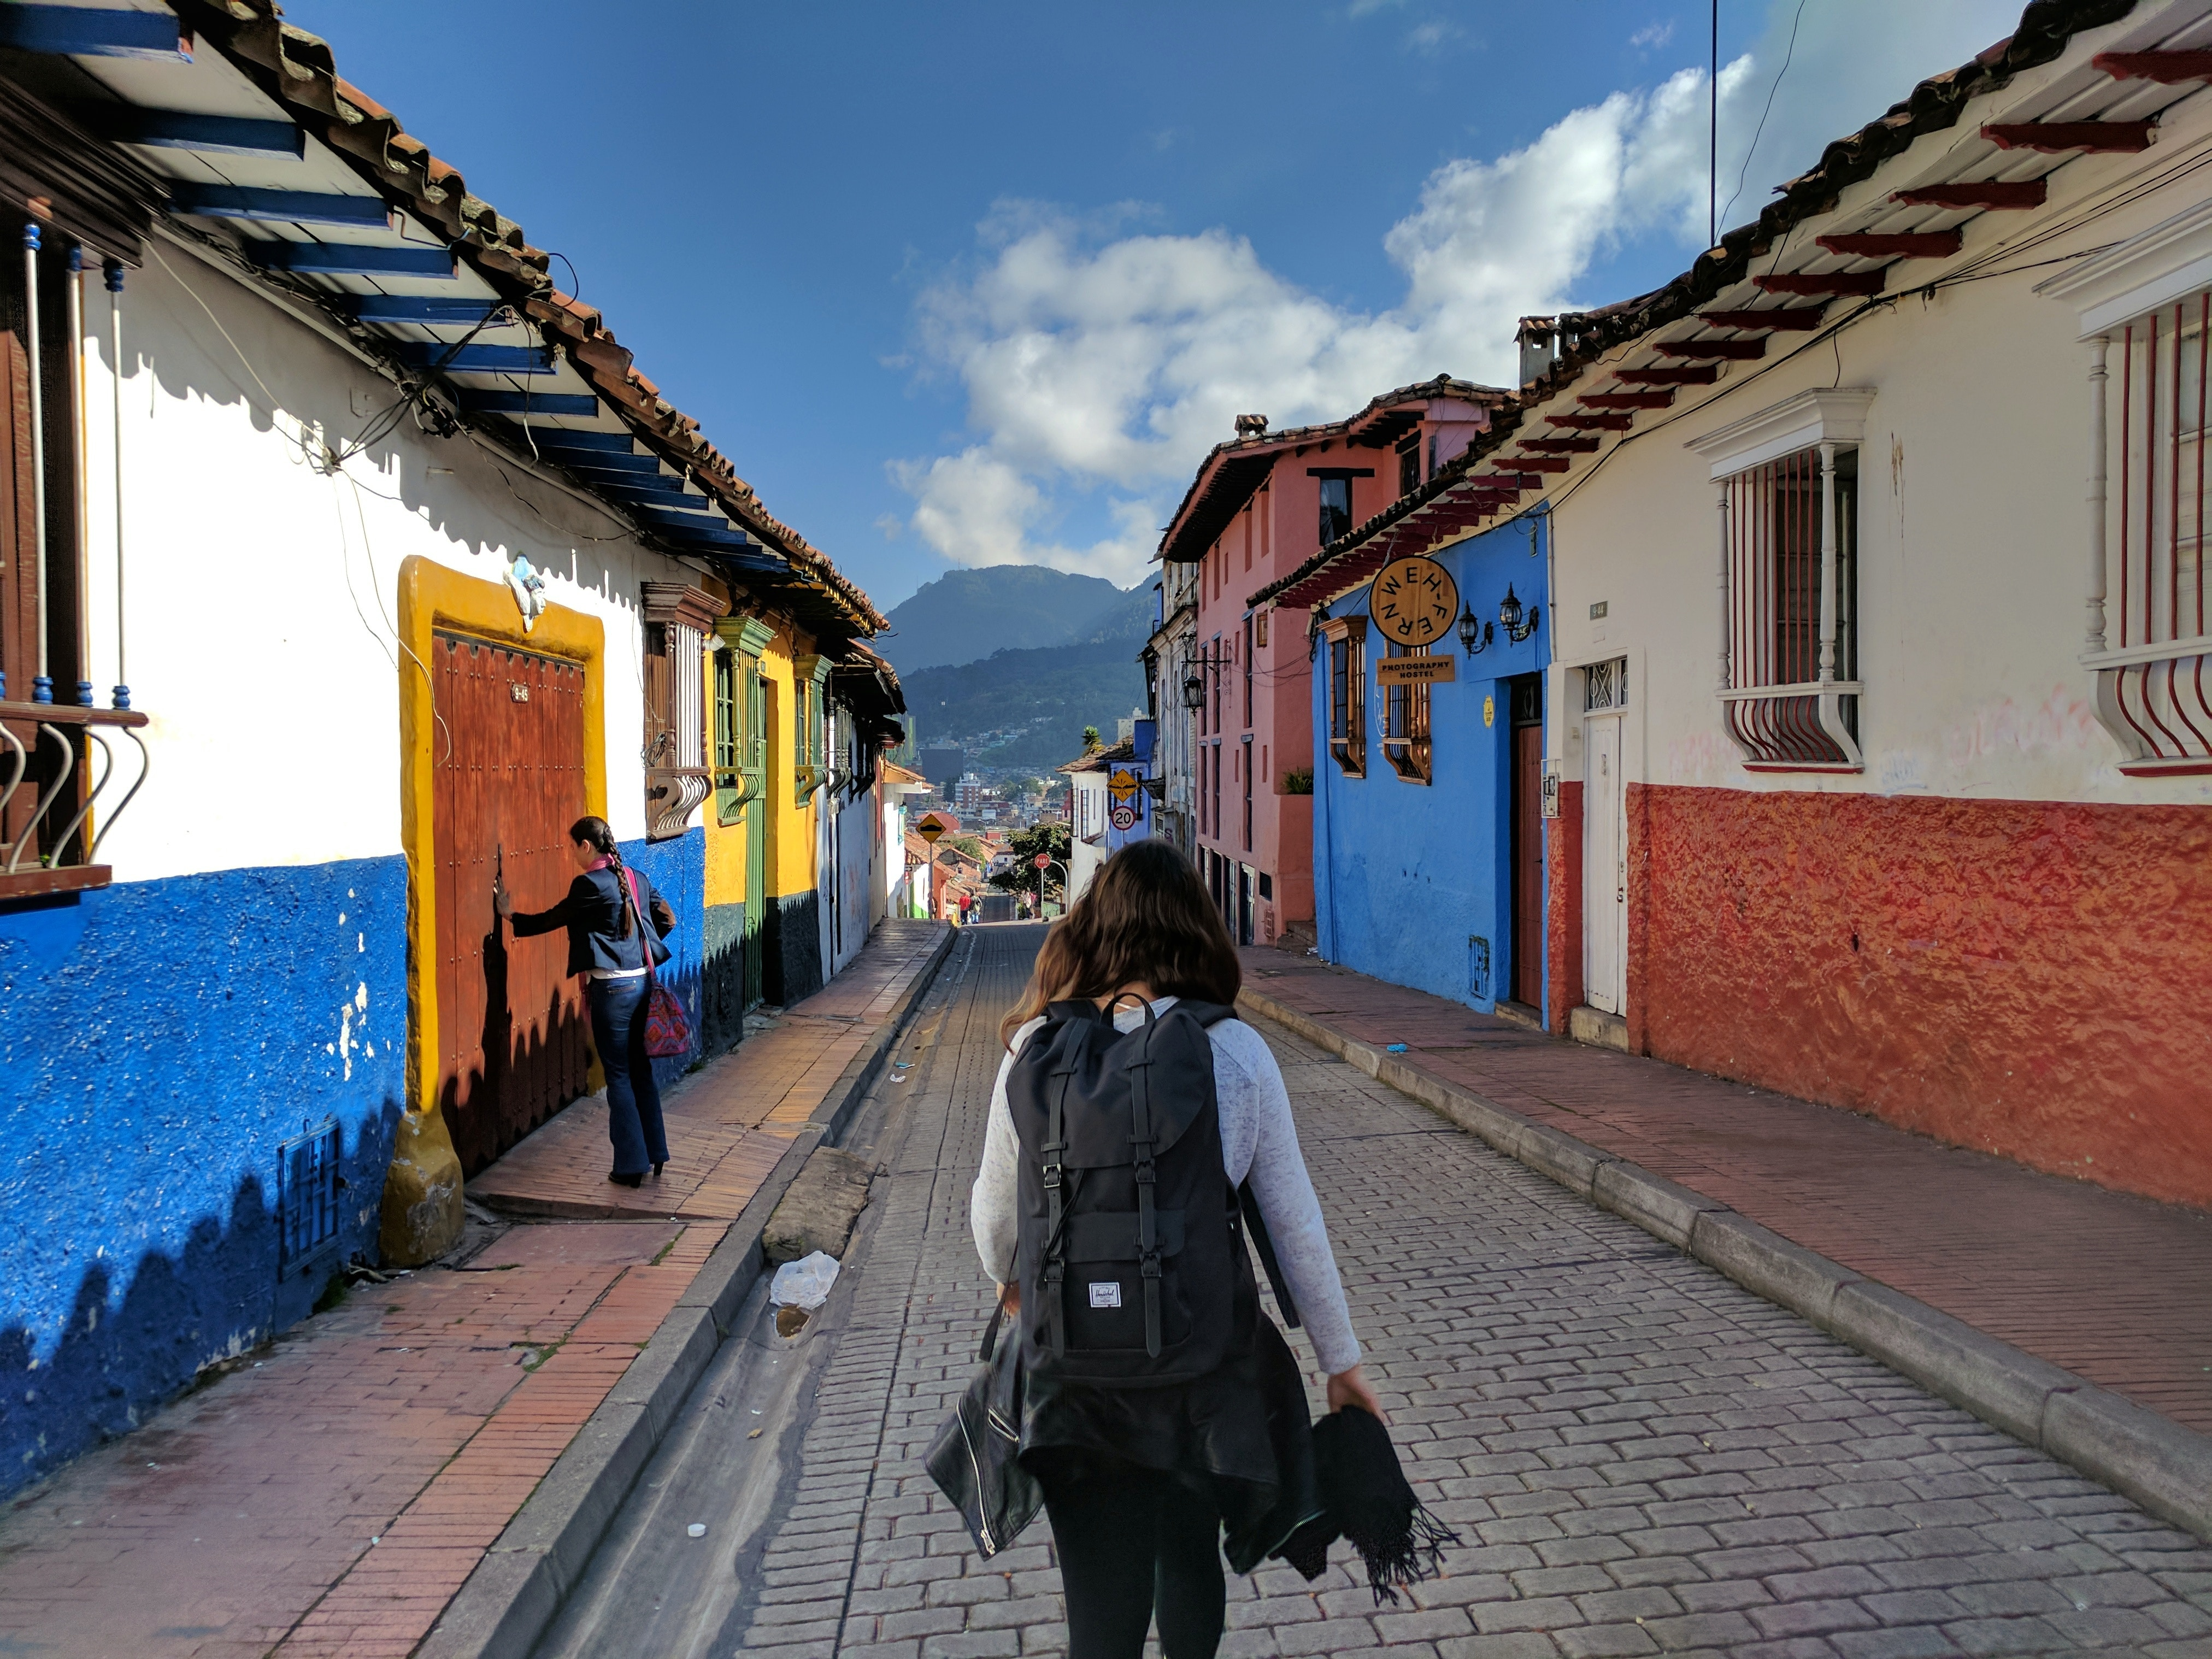 Insiders' tips - Why you need to add Bogotá to your South American itinerary